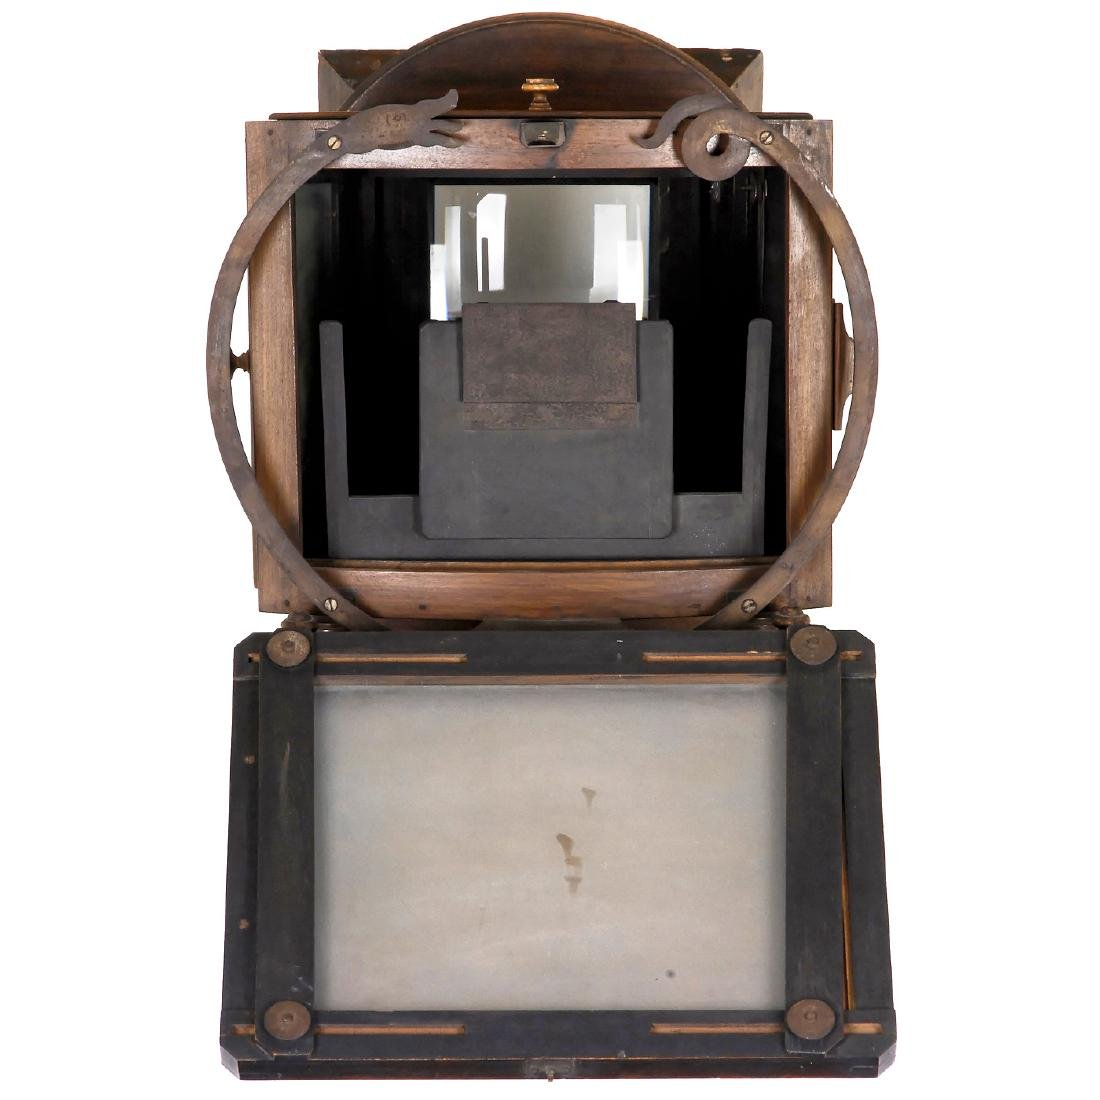 Megalethoscope by Carlo Ponti, 1862 - 4